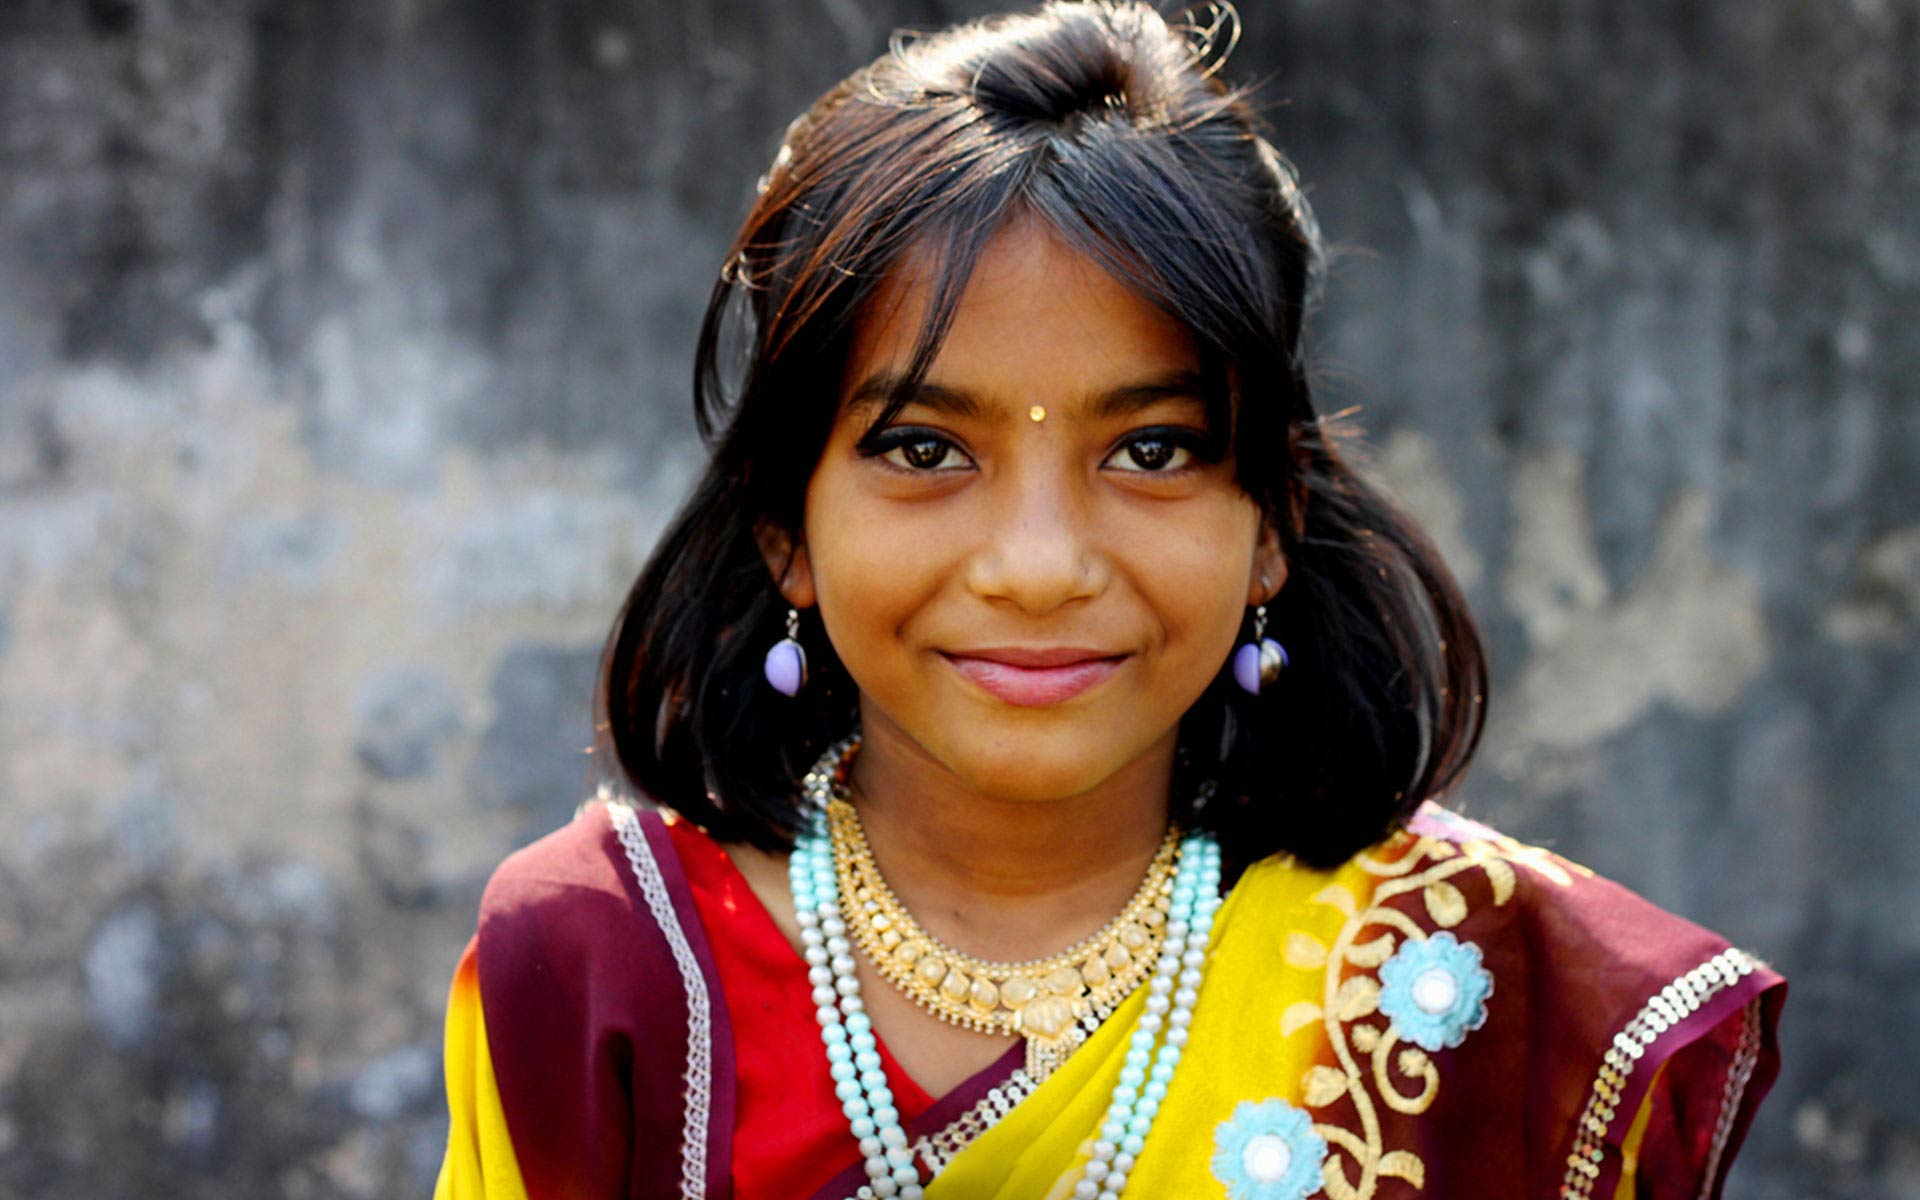 A girl from India dressed up in traditoinal clothing